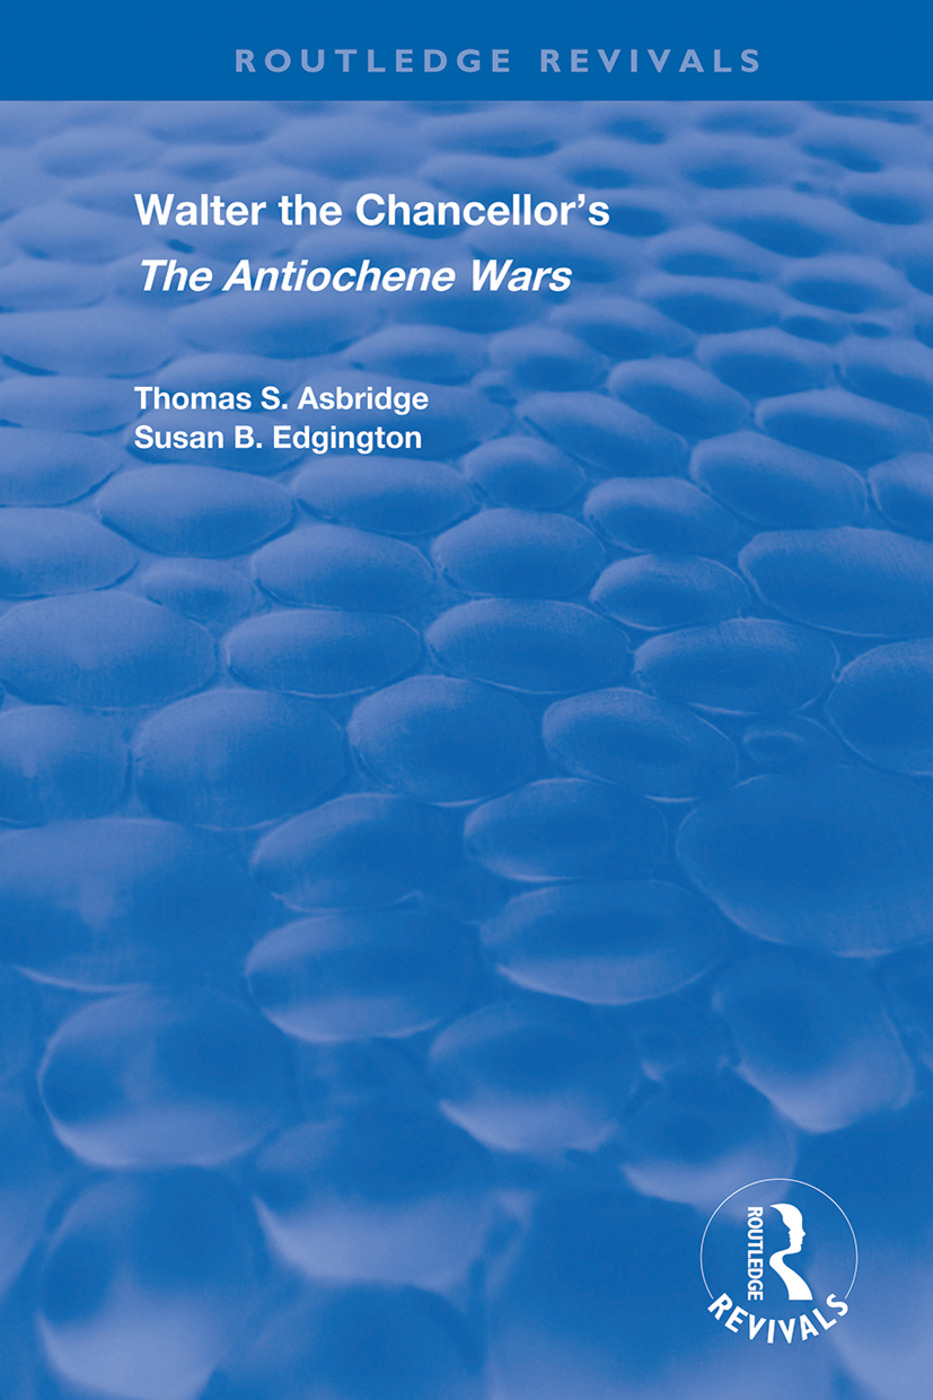 Walter the Chancellor's The Antiochene Wars